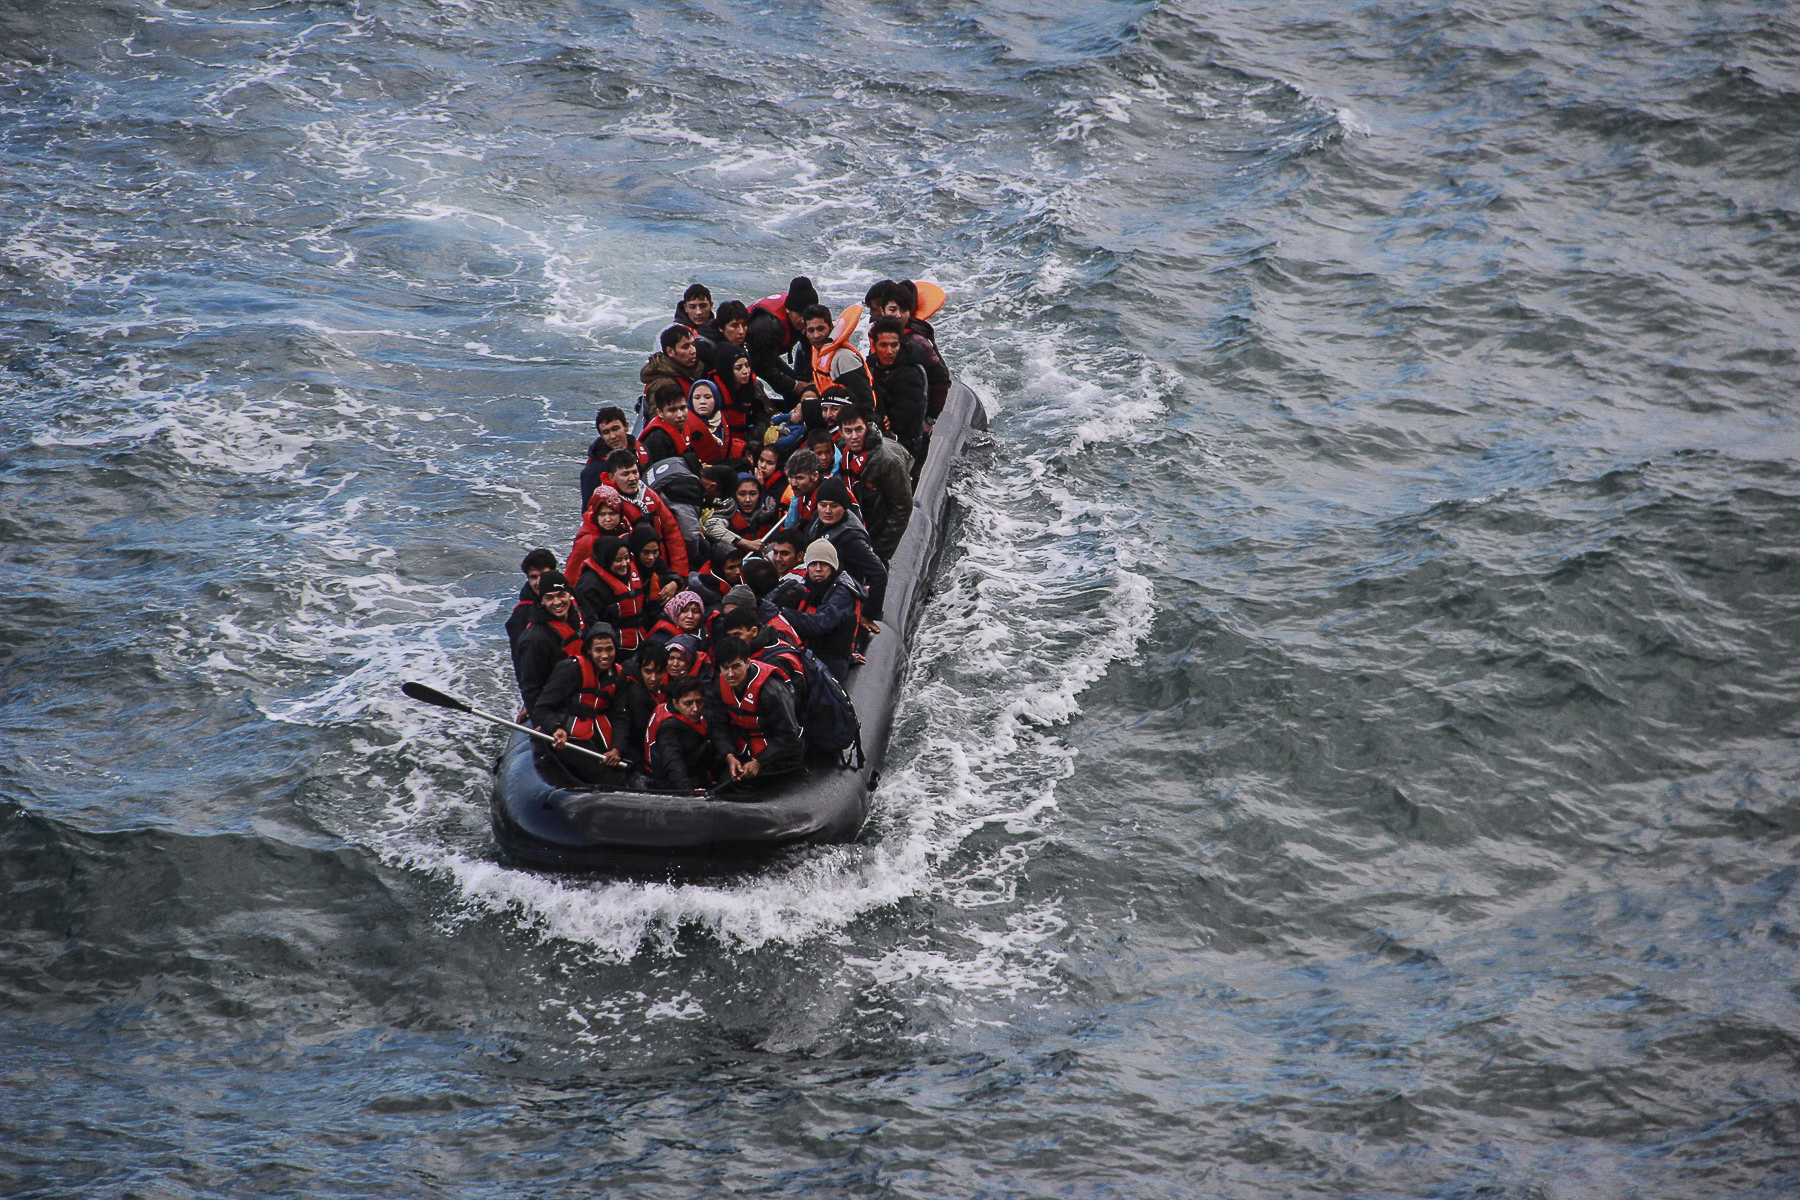 A dinghy carrying refugees from Syria, Iraq and Afghanistan arrives to the shores of Lesvos. October 2015.